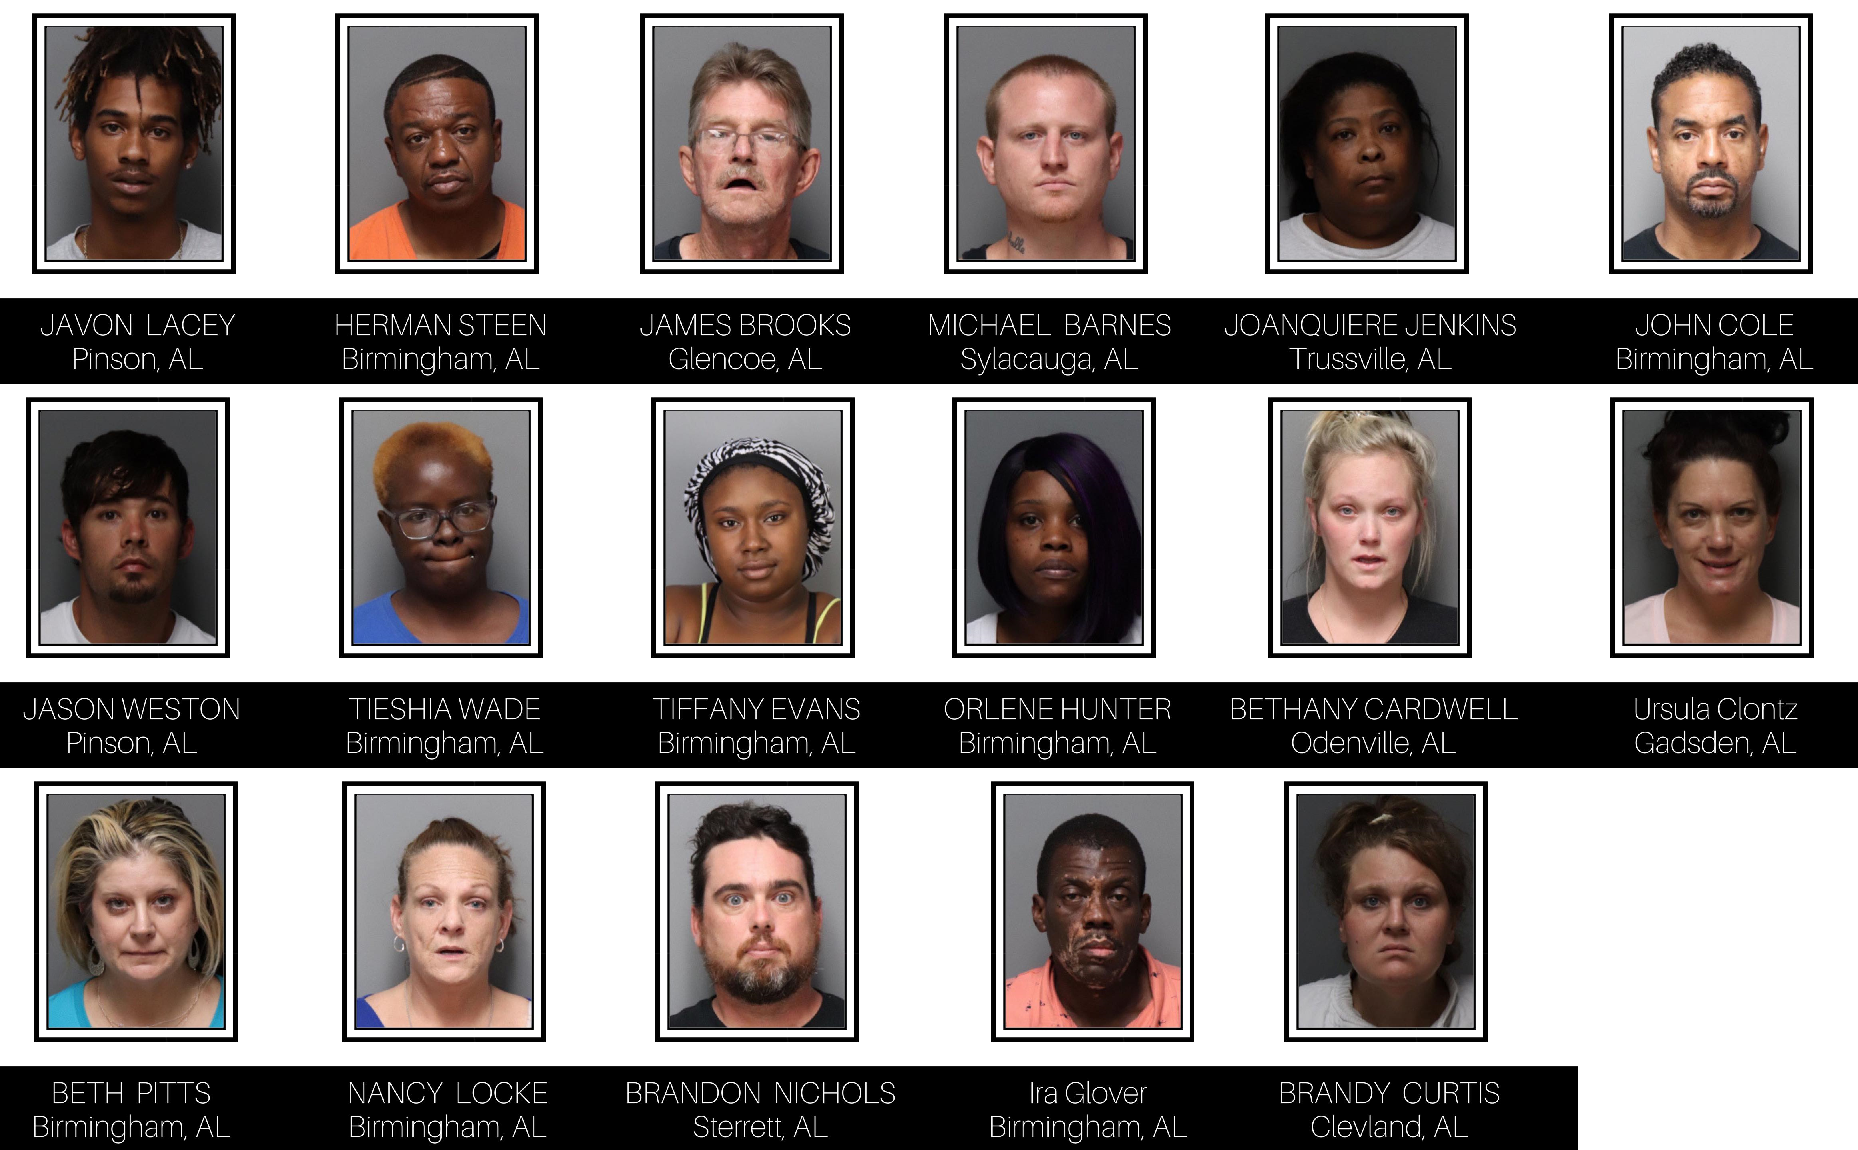 POLICE: 17 people arrested in 7 days for shoplifting in Trussville